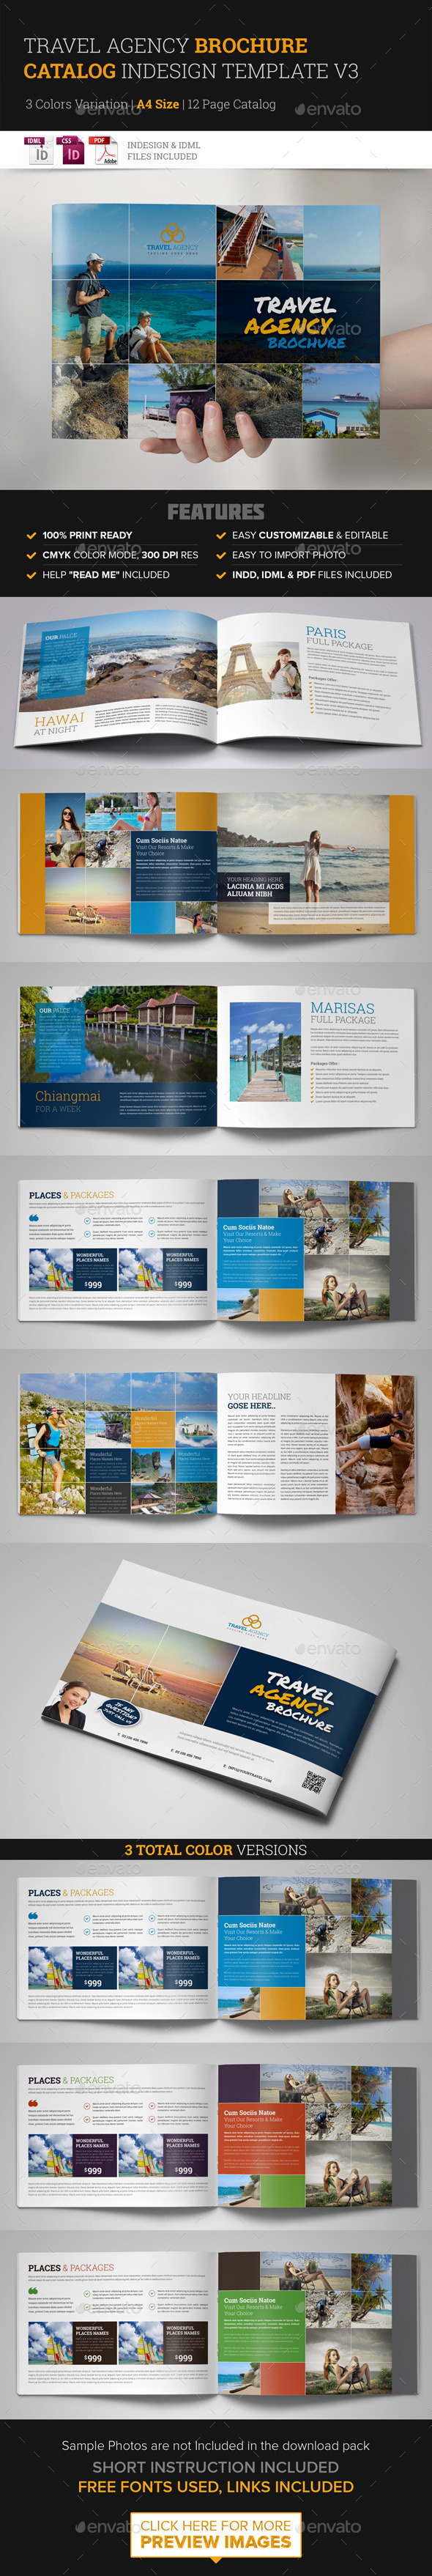 Travel Agency Brochure Catalog InDesign Template 3 - Corporate Brochures